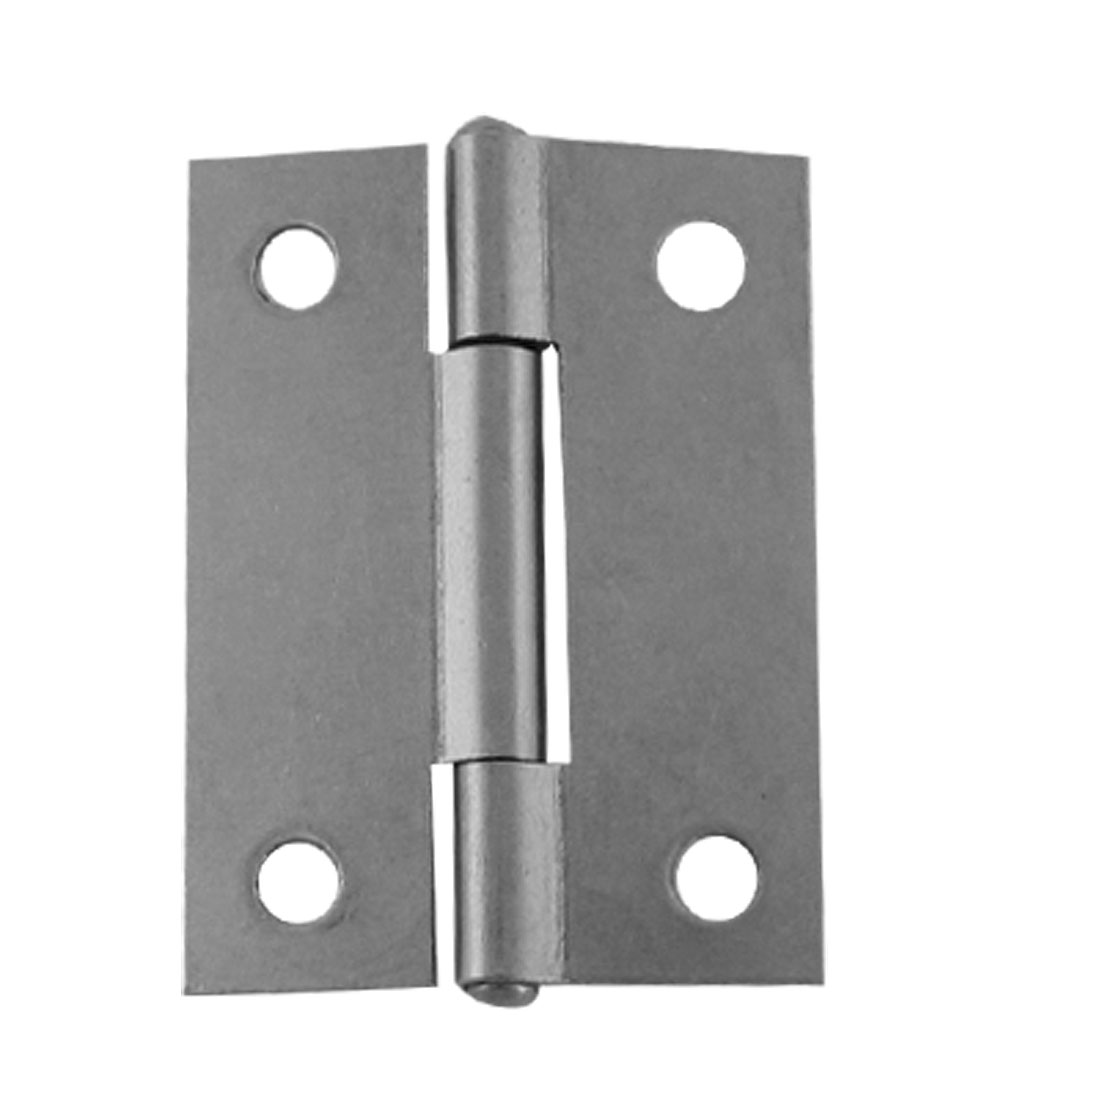 "2"" Length Iron Door Iron Butt Hinges Silver Tone 10 Pcs"